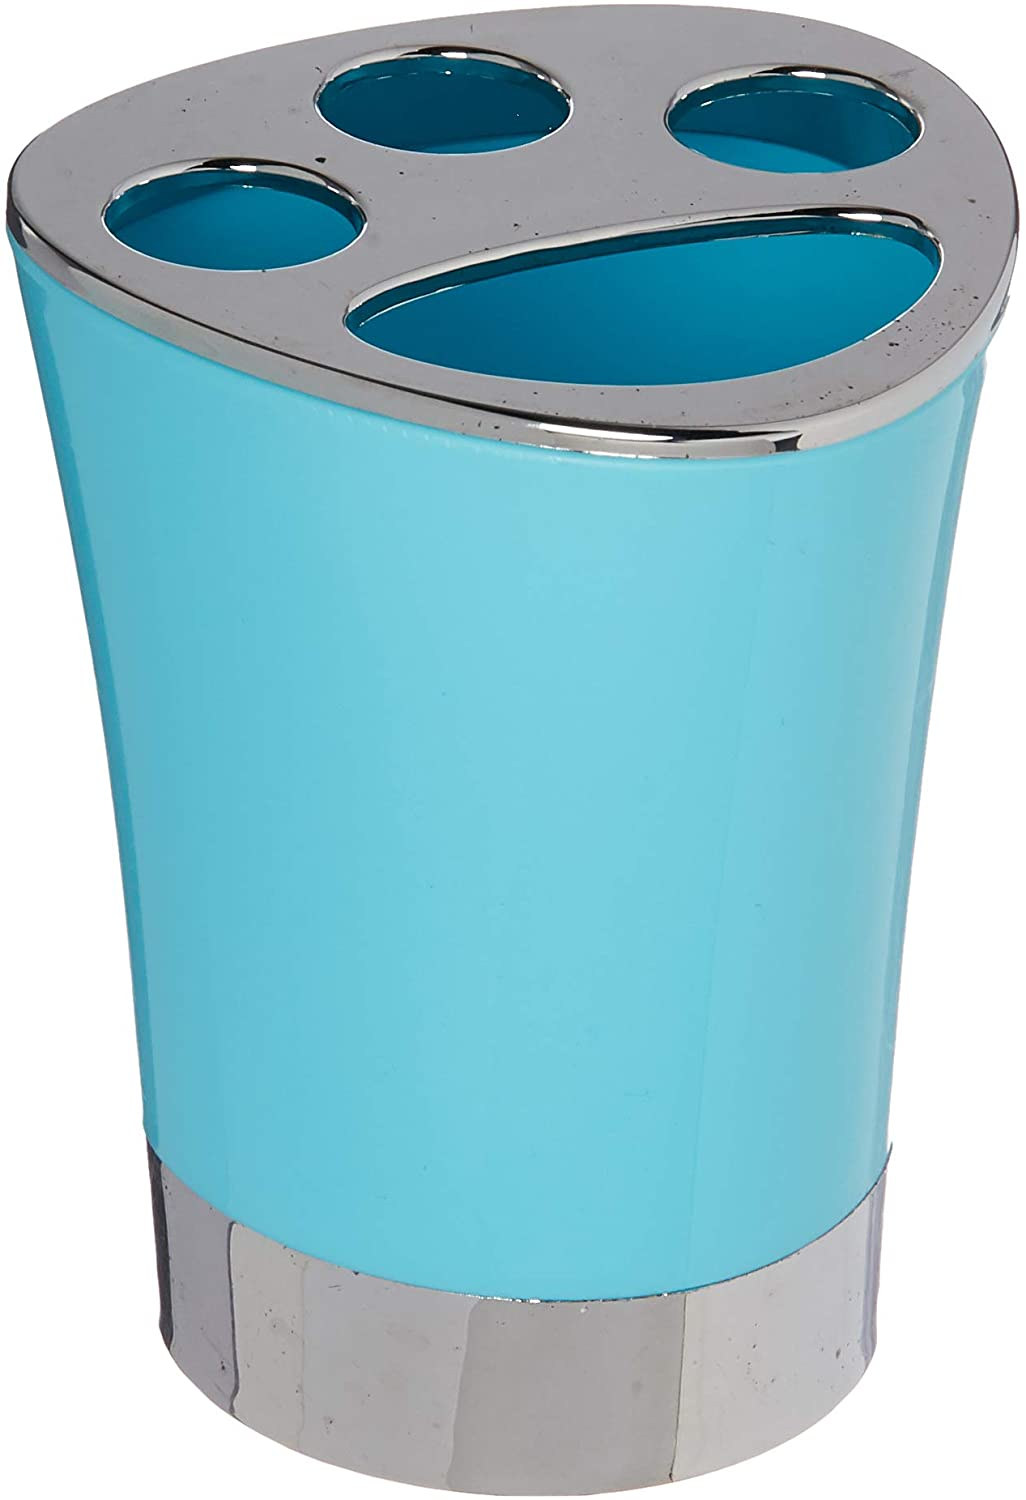 EVIDECO 6318N147 Modern Toothbrush and Toothpaste Holder with Chrome Base, 3.15 L x 3.15 W x 4.05 H, Aqua Blue